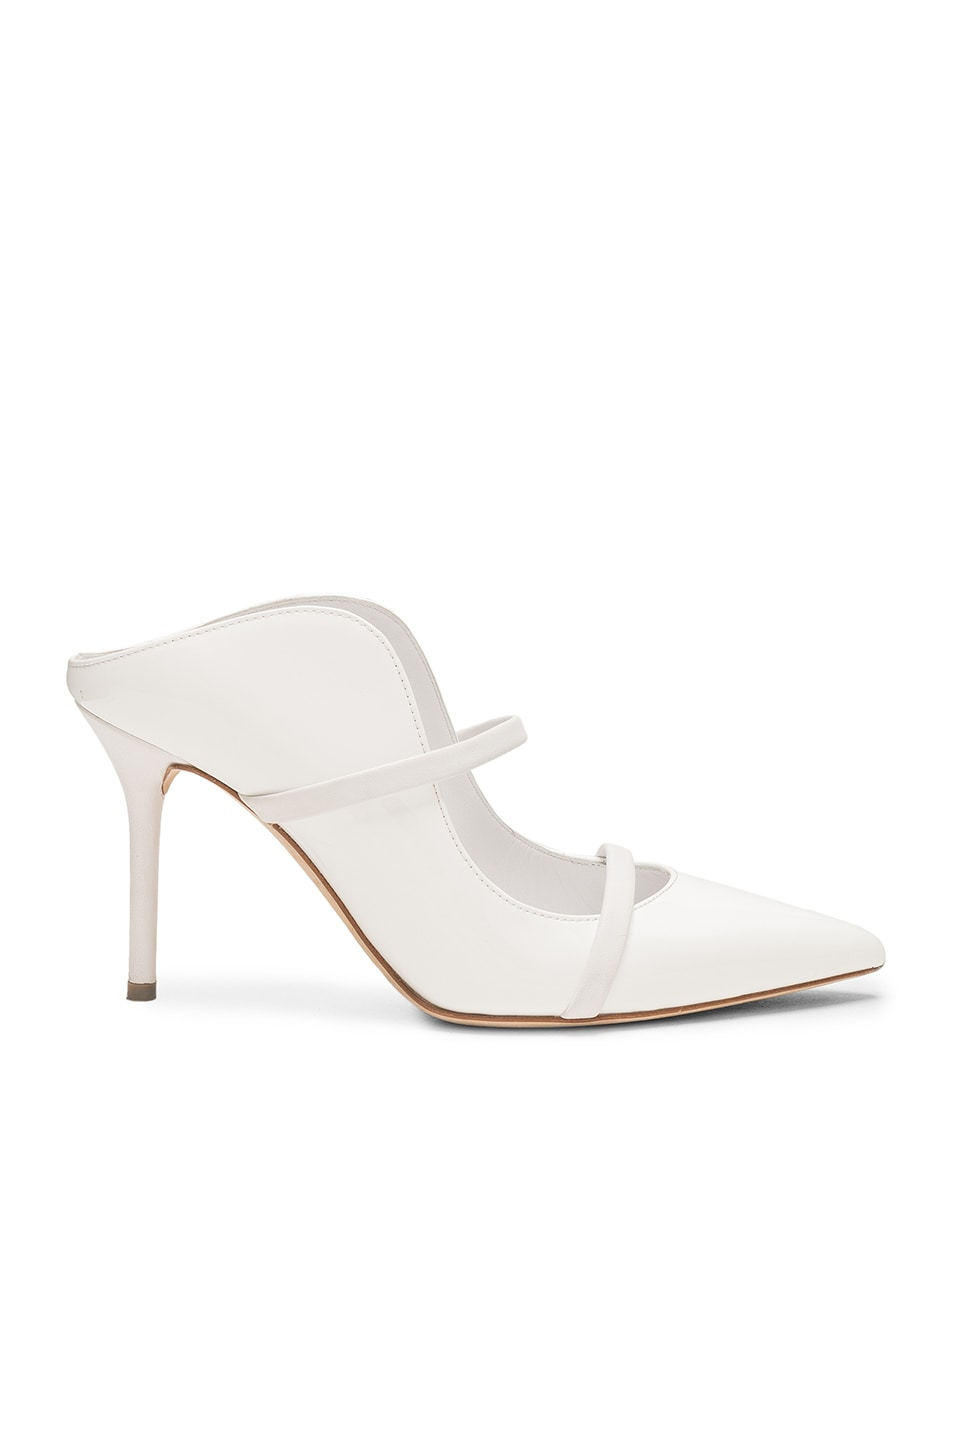 Image 1 of Malone Souliers Maureen Heel in White